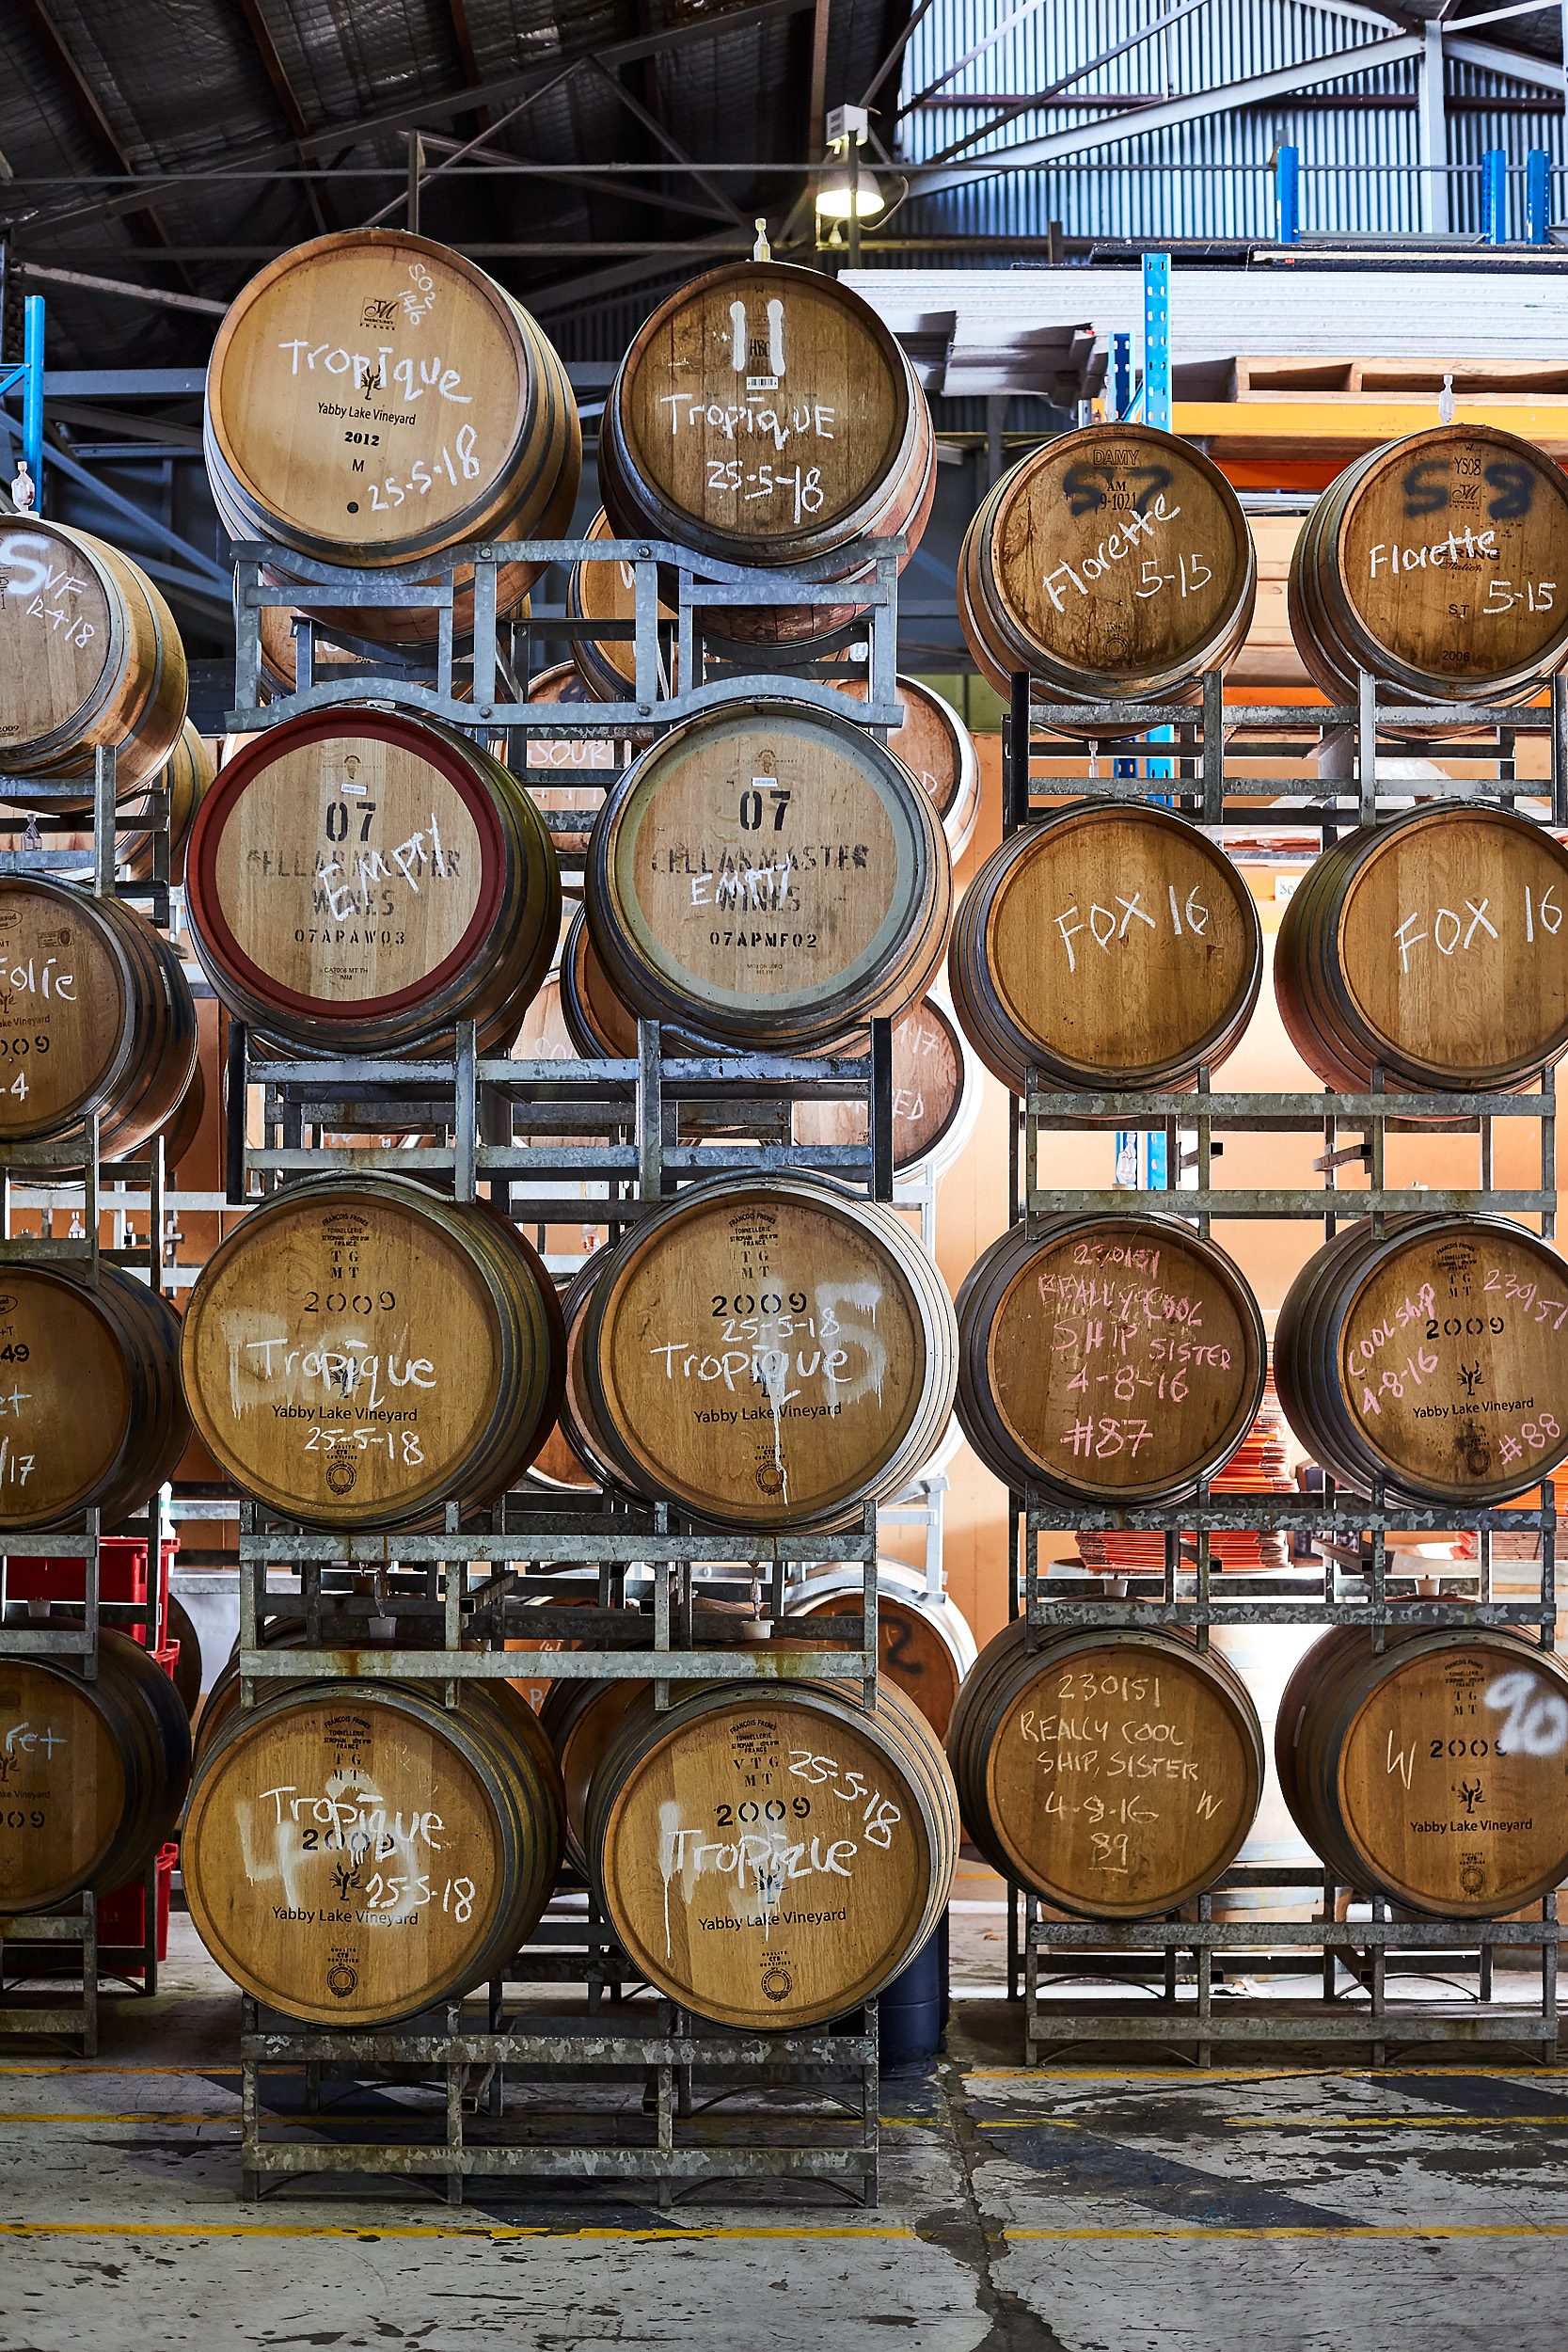 The beers are aged in wine barrels